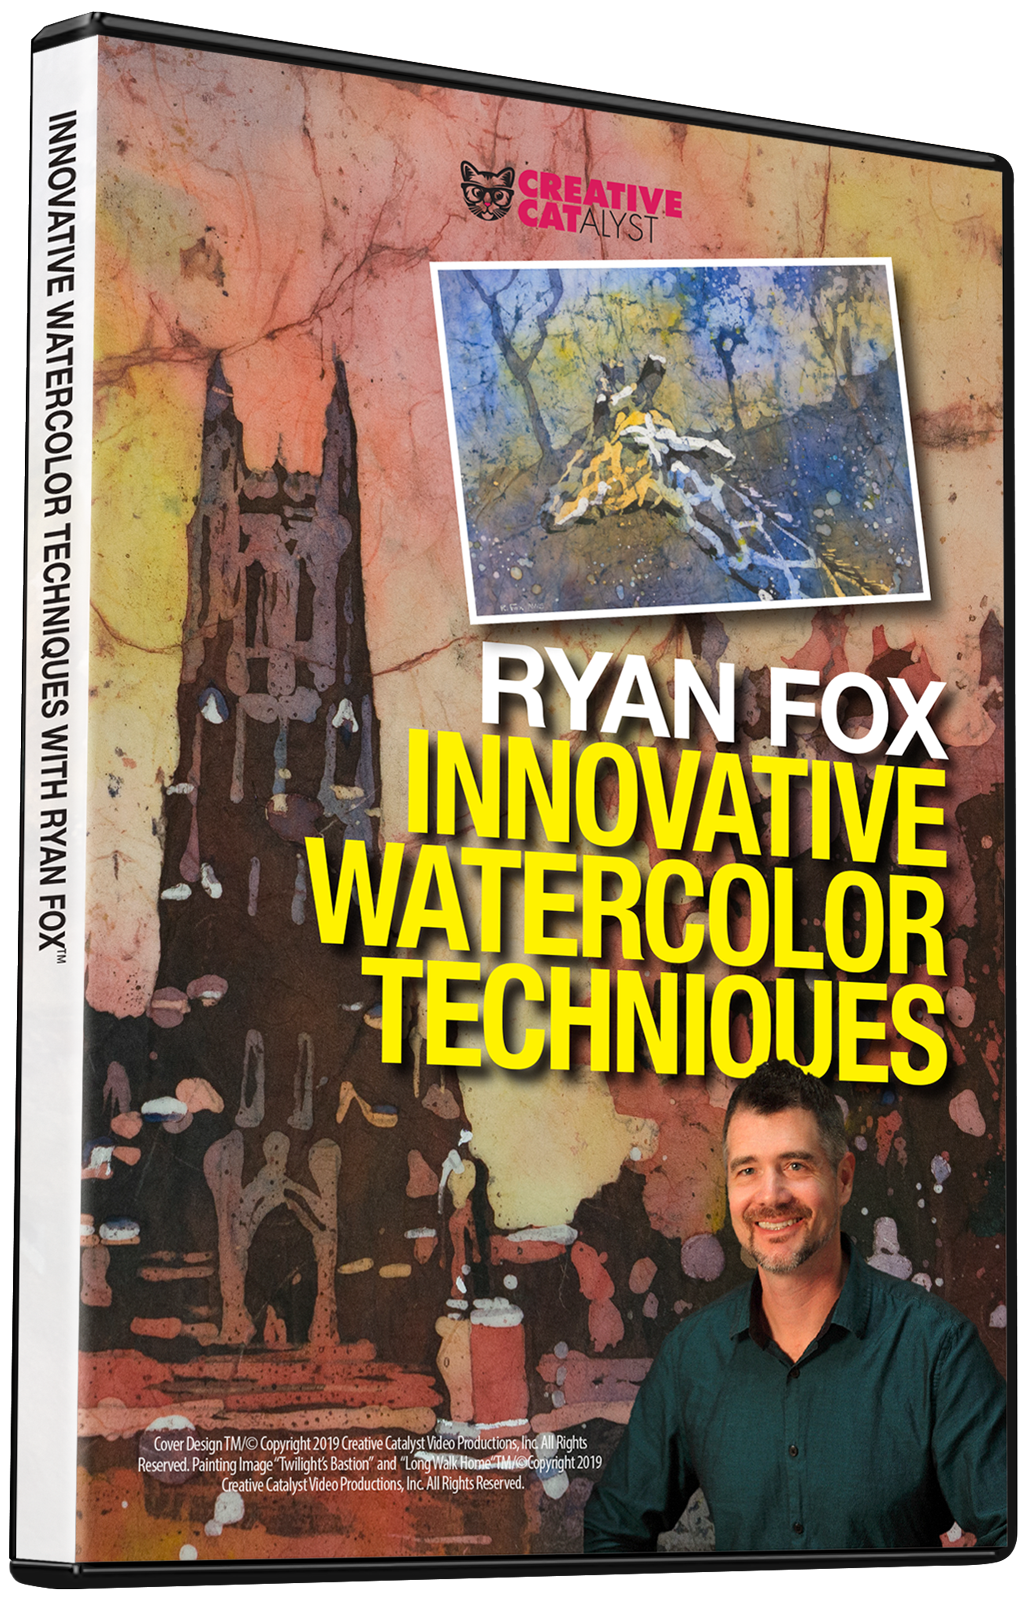 Innovative Watercolor Techniques with Ryan Fox